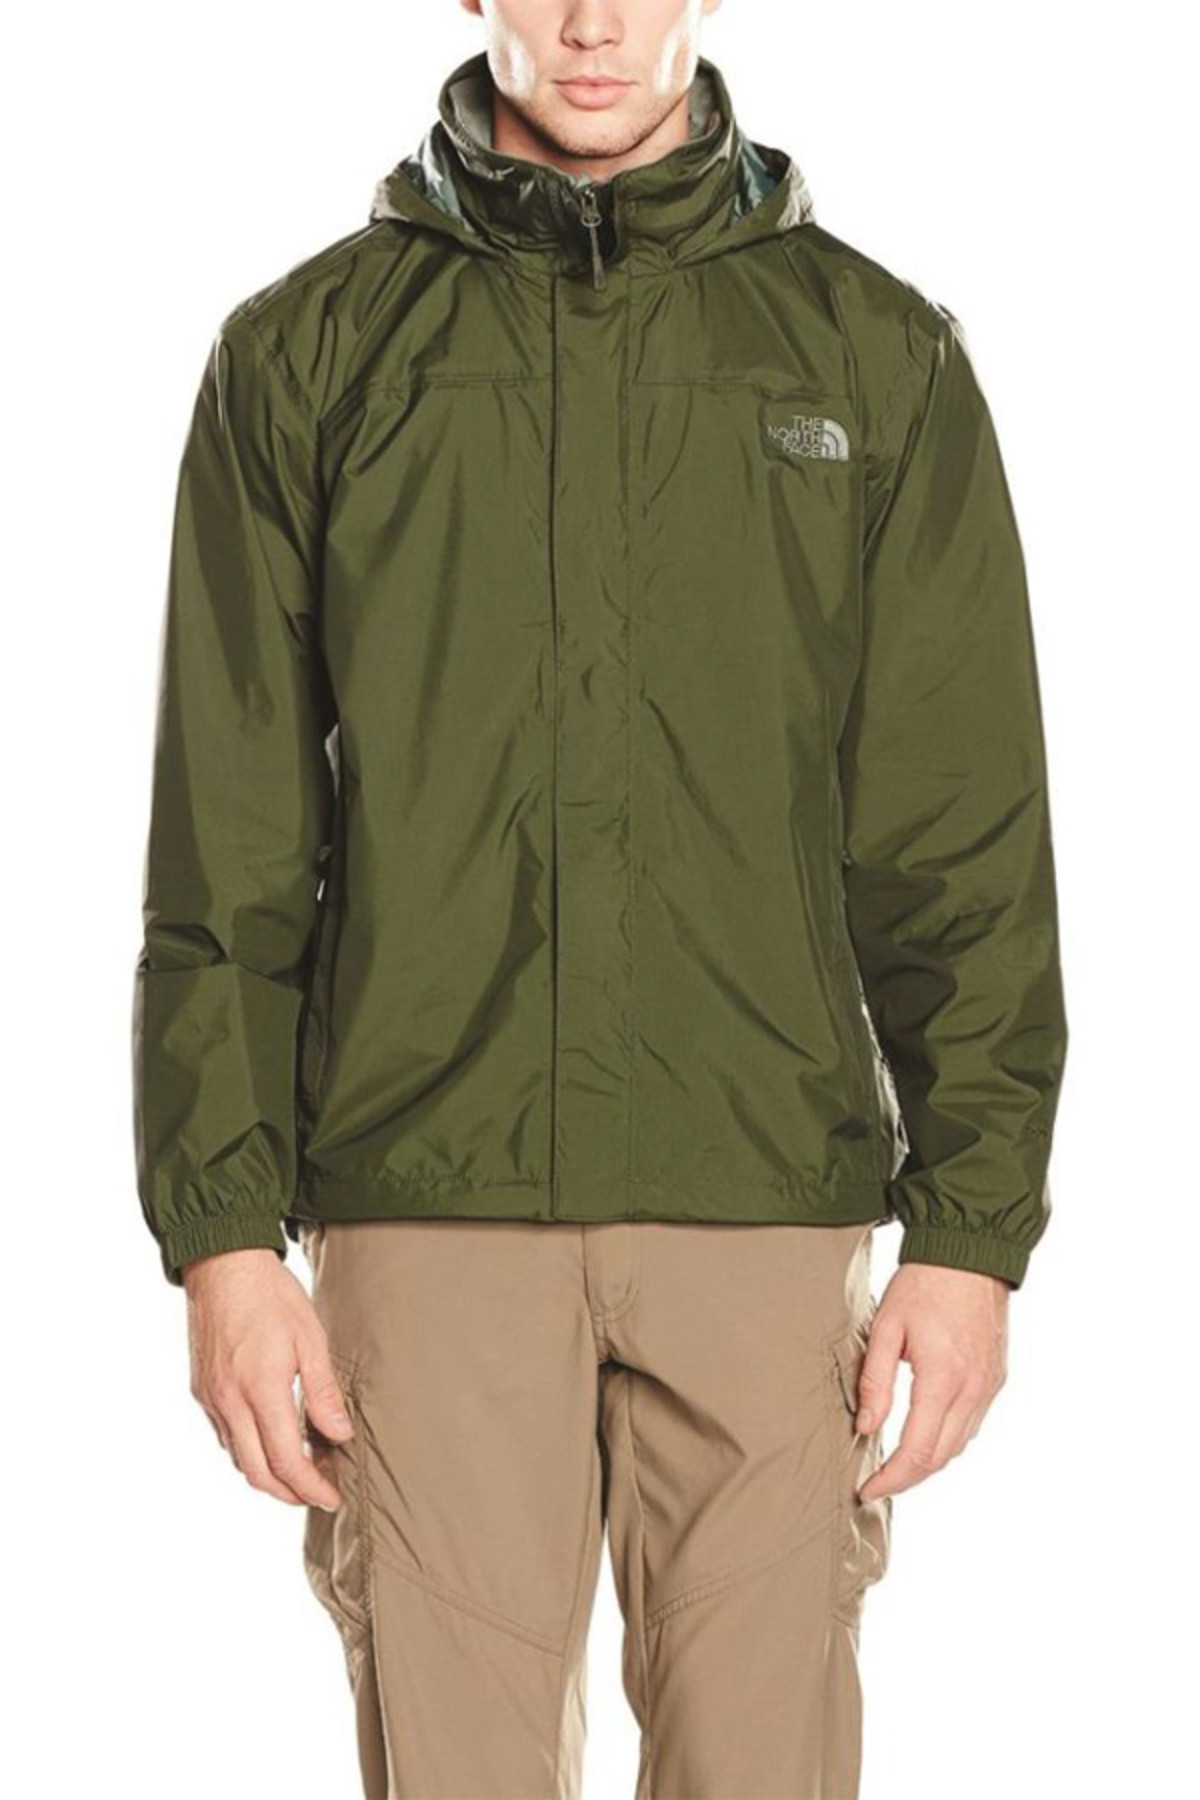 The North Face – M Resolve Jacket Bay Mont – 489.0 TL